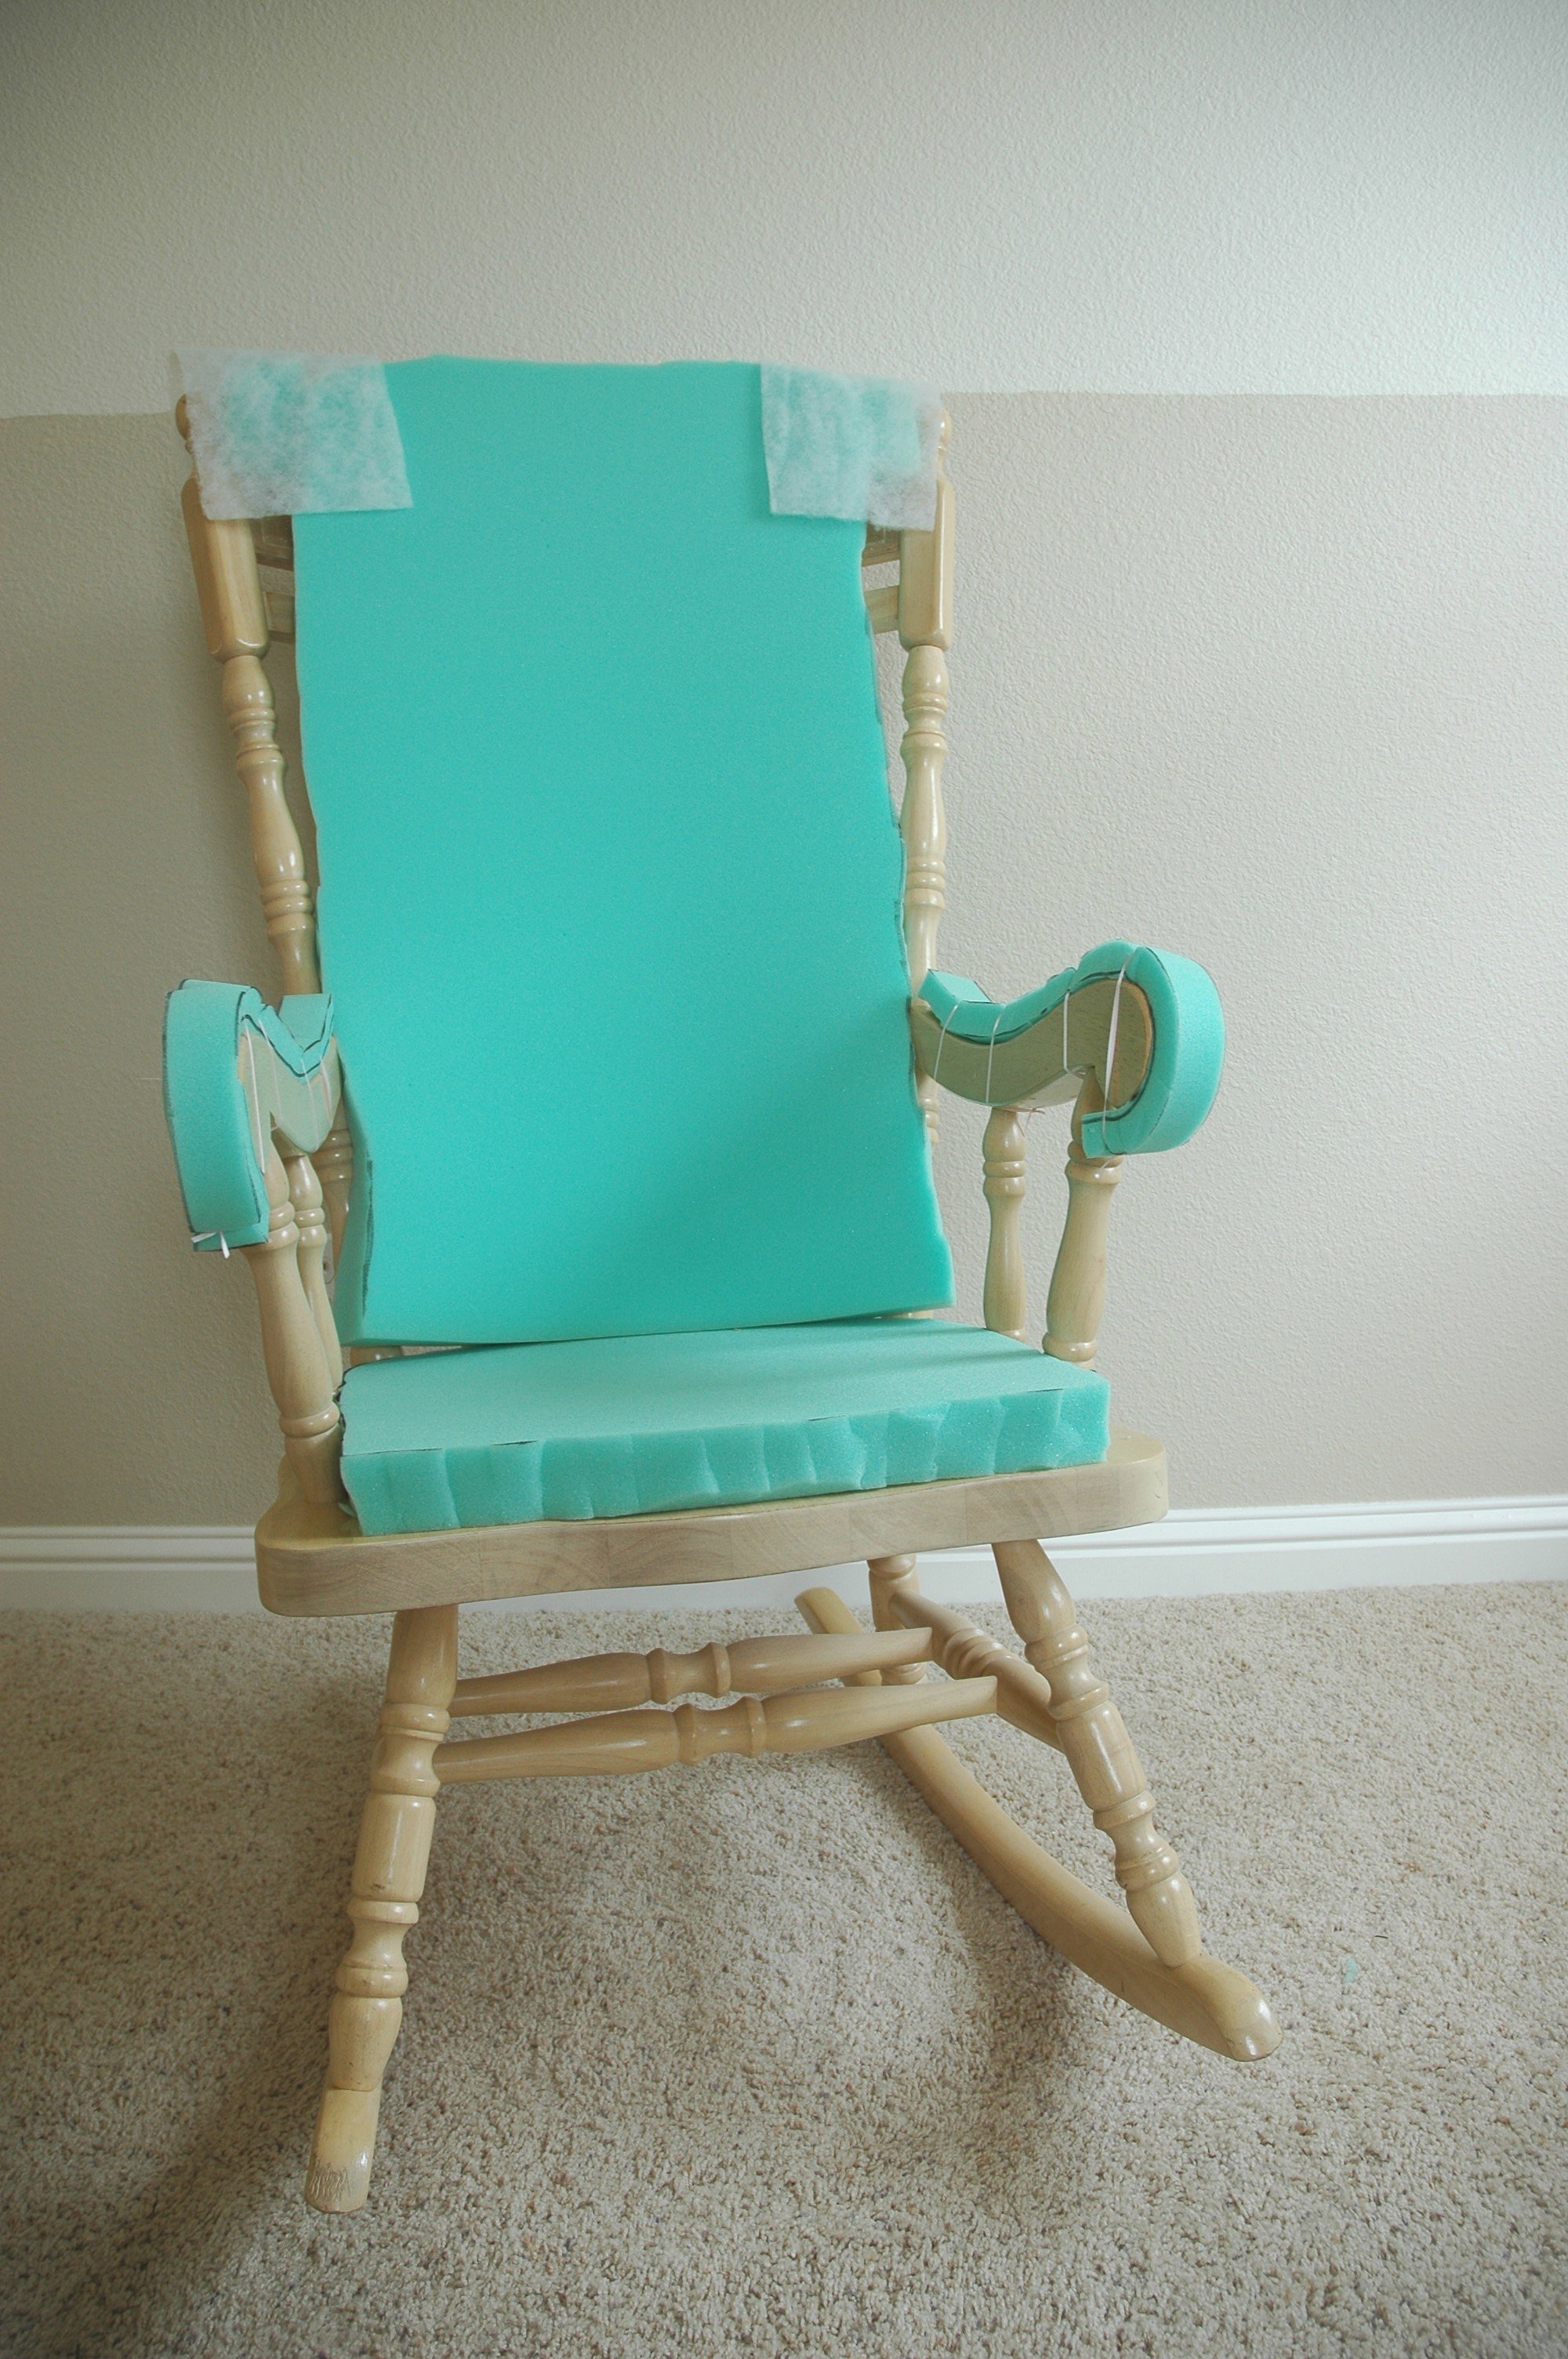 Rocking Chair Covers Adding Comfort To A Wooden Rocking Chair Part One Makely